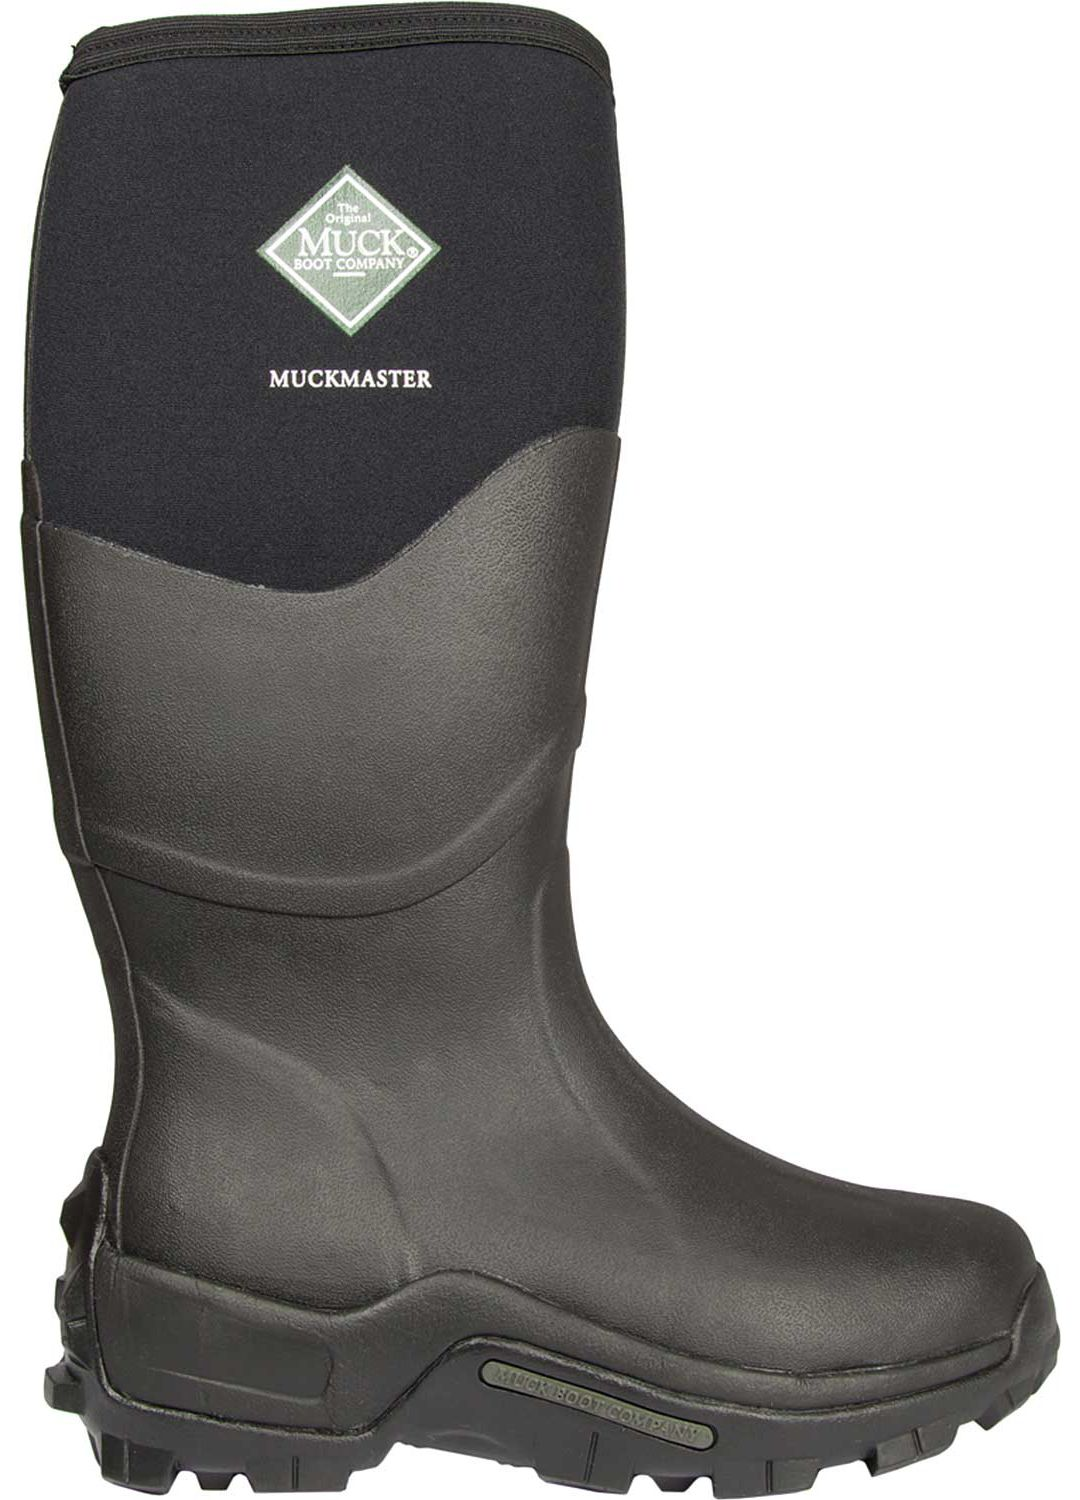 f7e5bf12d91 Muck Boot Men's Muckmaster High Waterproof Work Boots